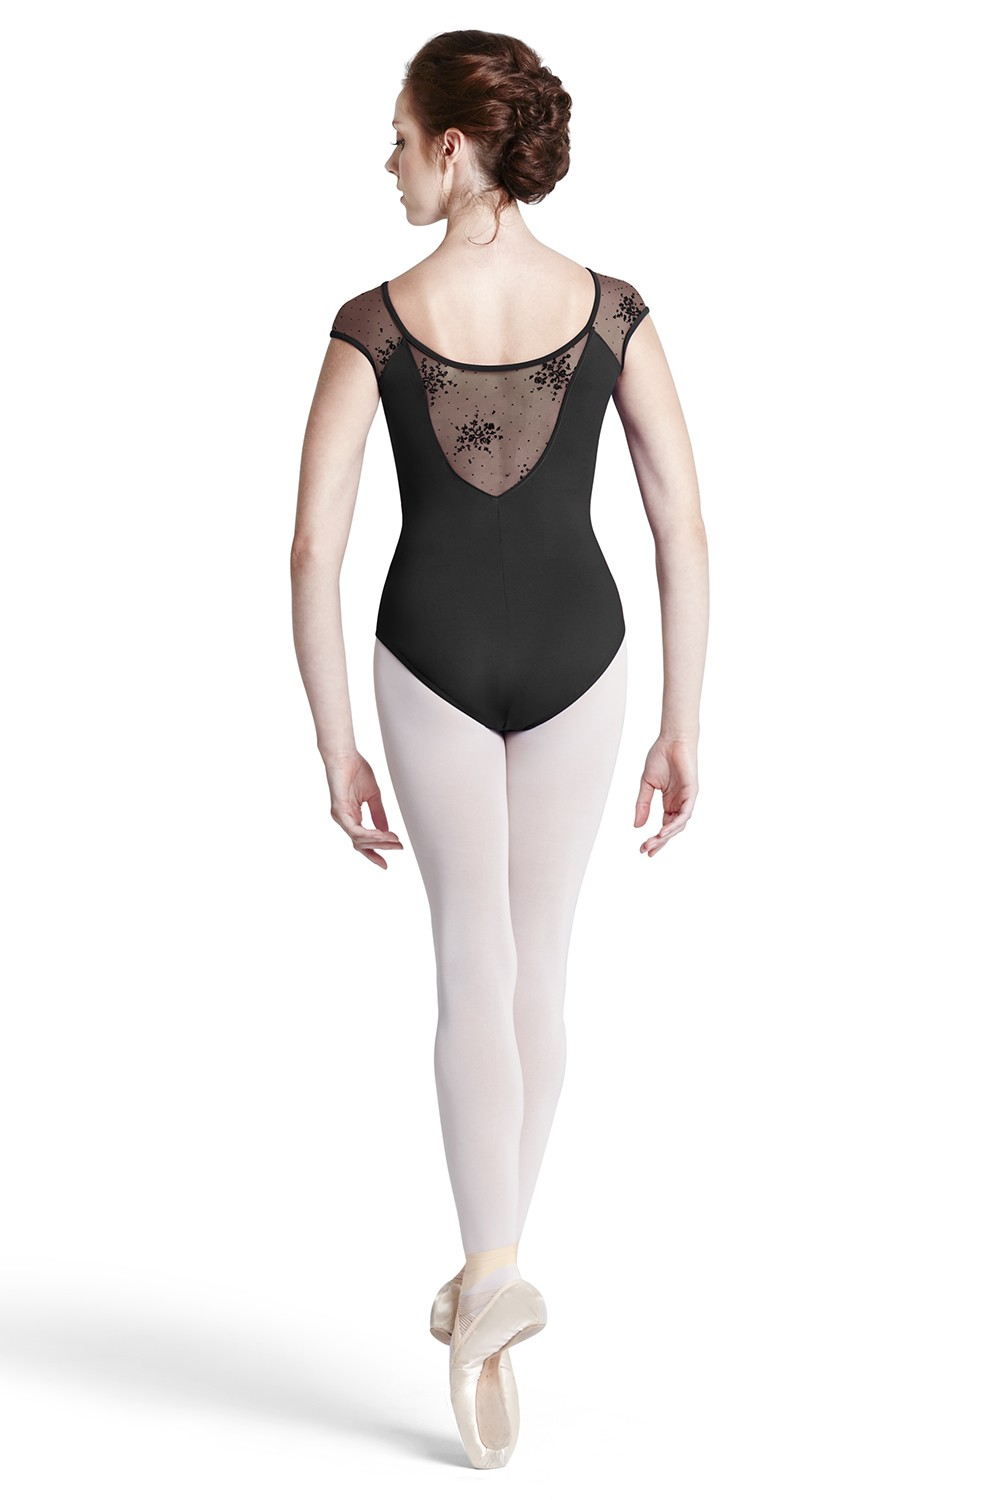 Floral Flck Cap Leo Women's Dance Leotards